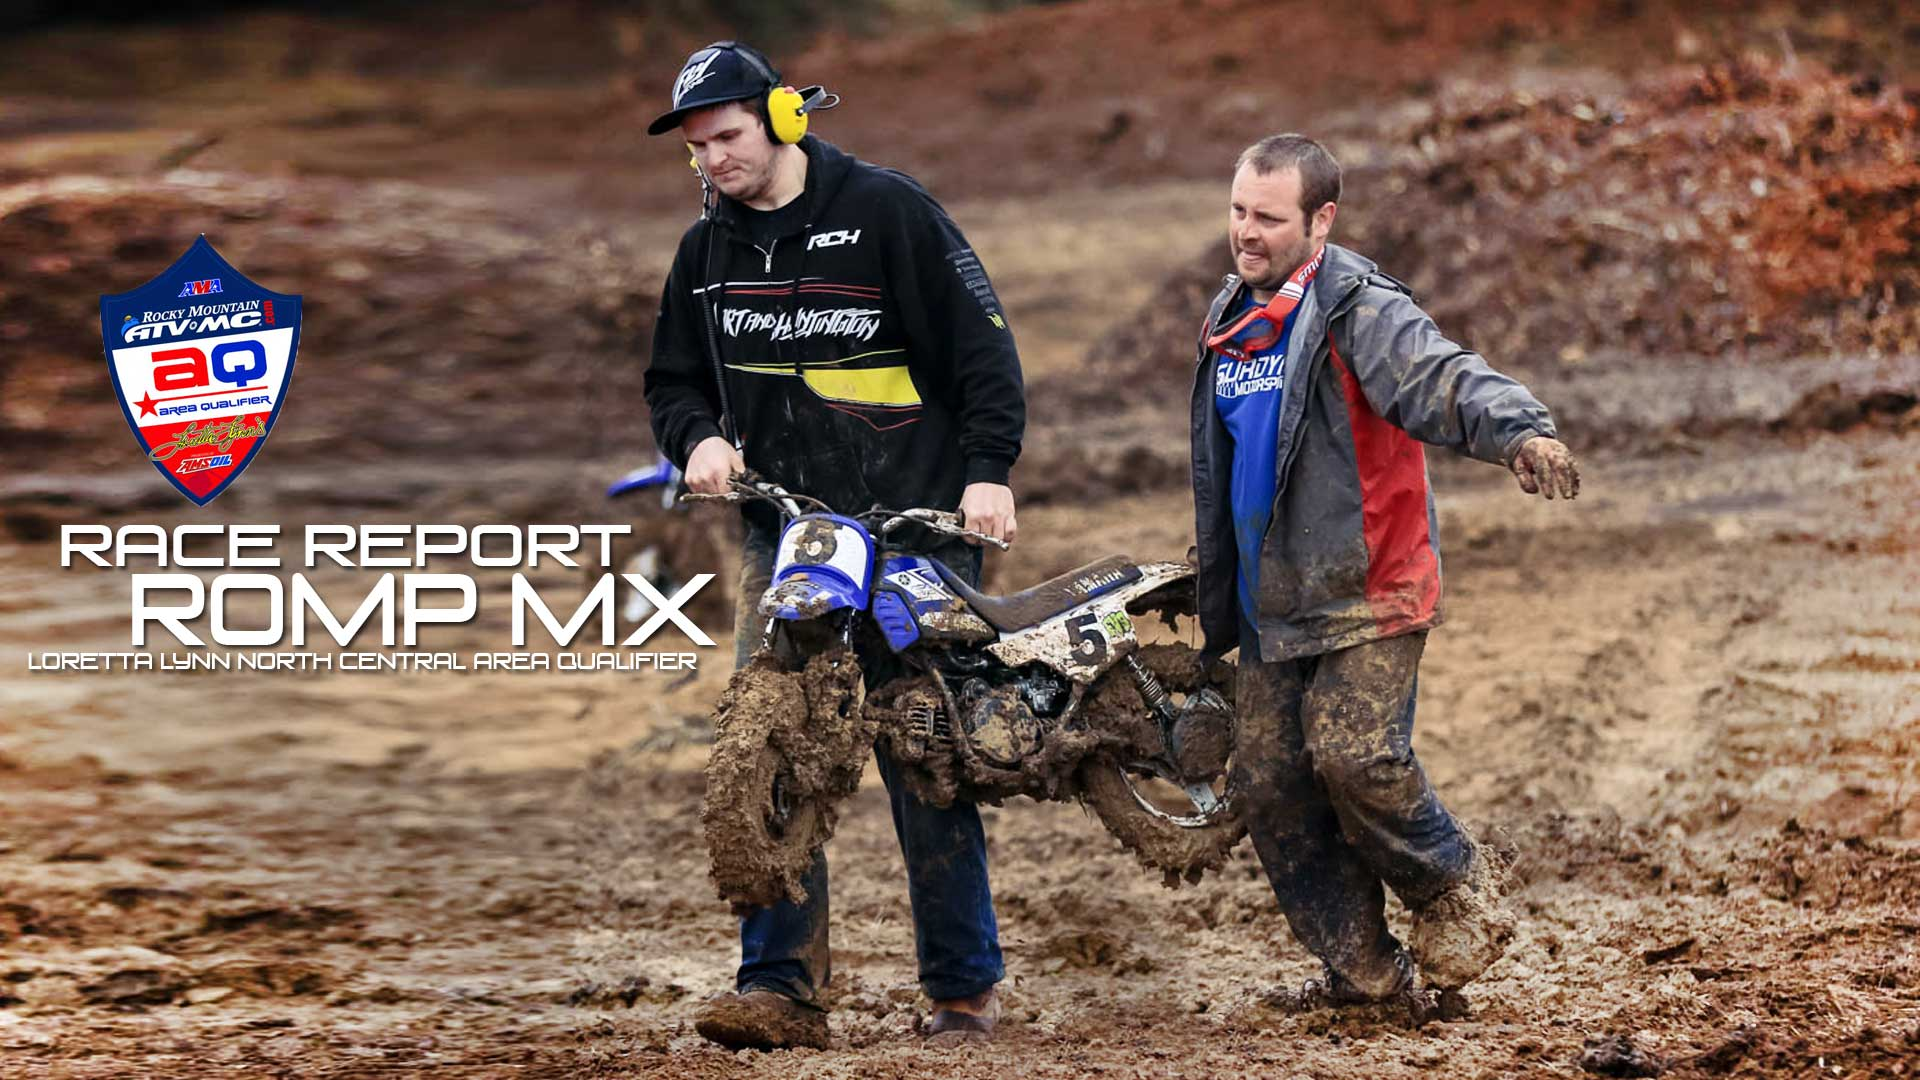 RACE REPORT: ROMP MX LL Area Qualifier - Glory Hog Media